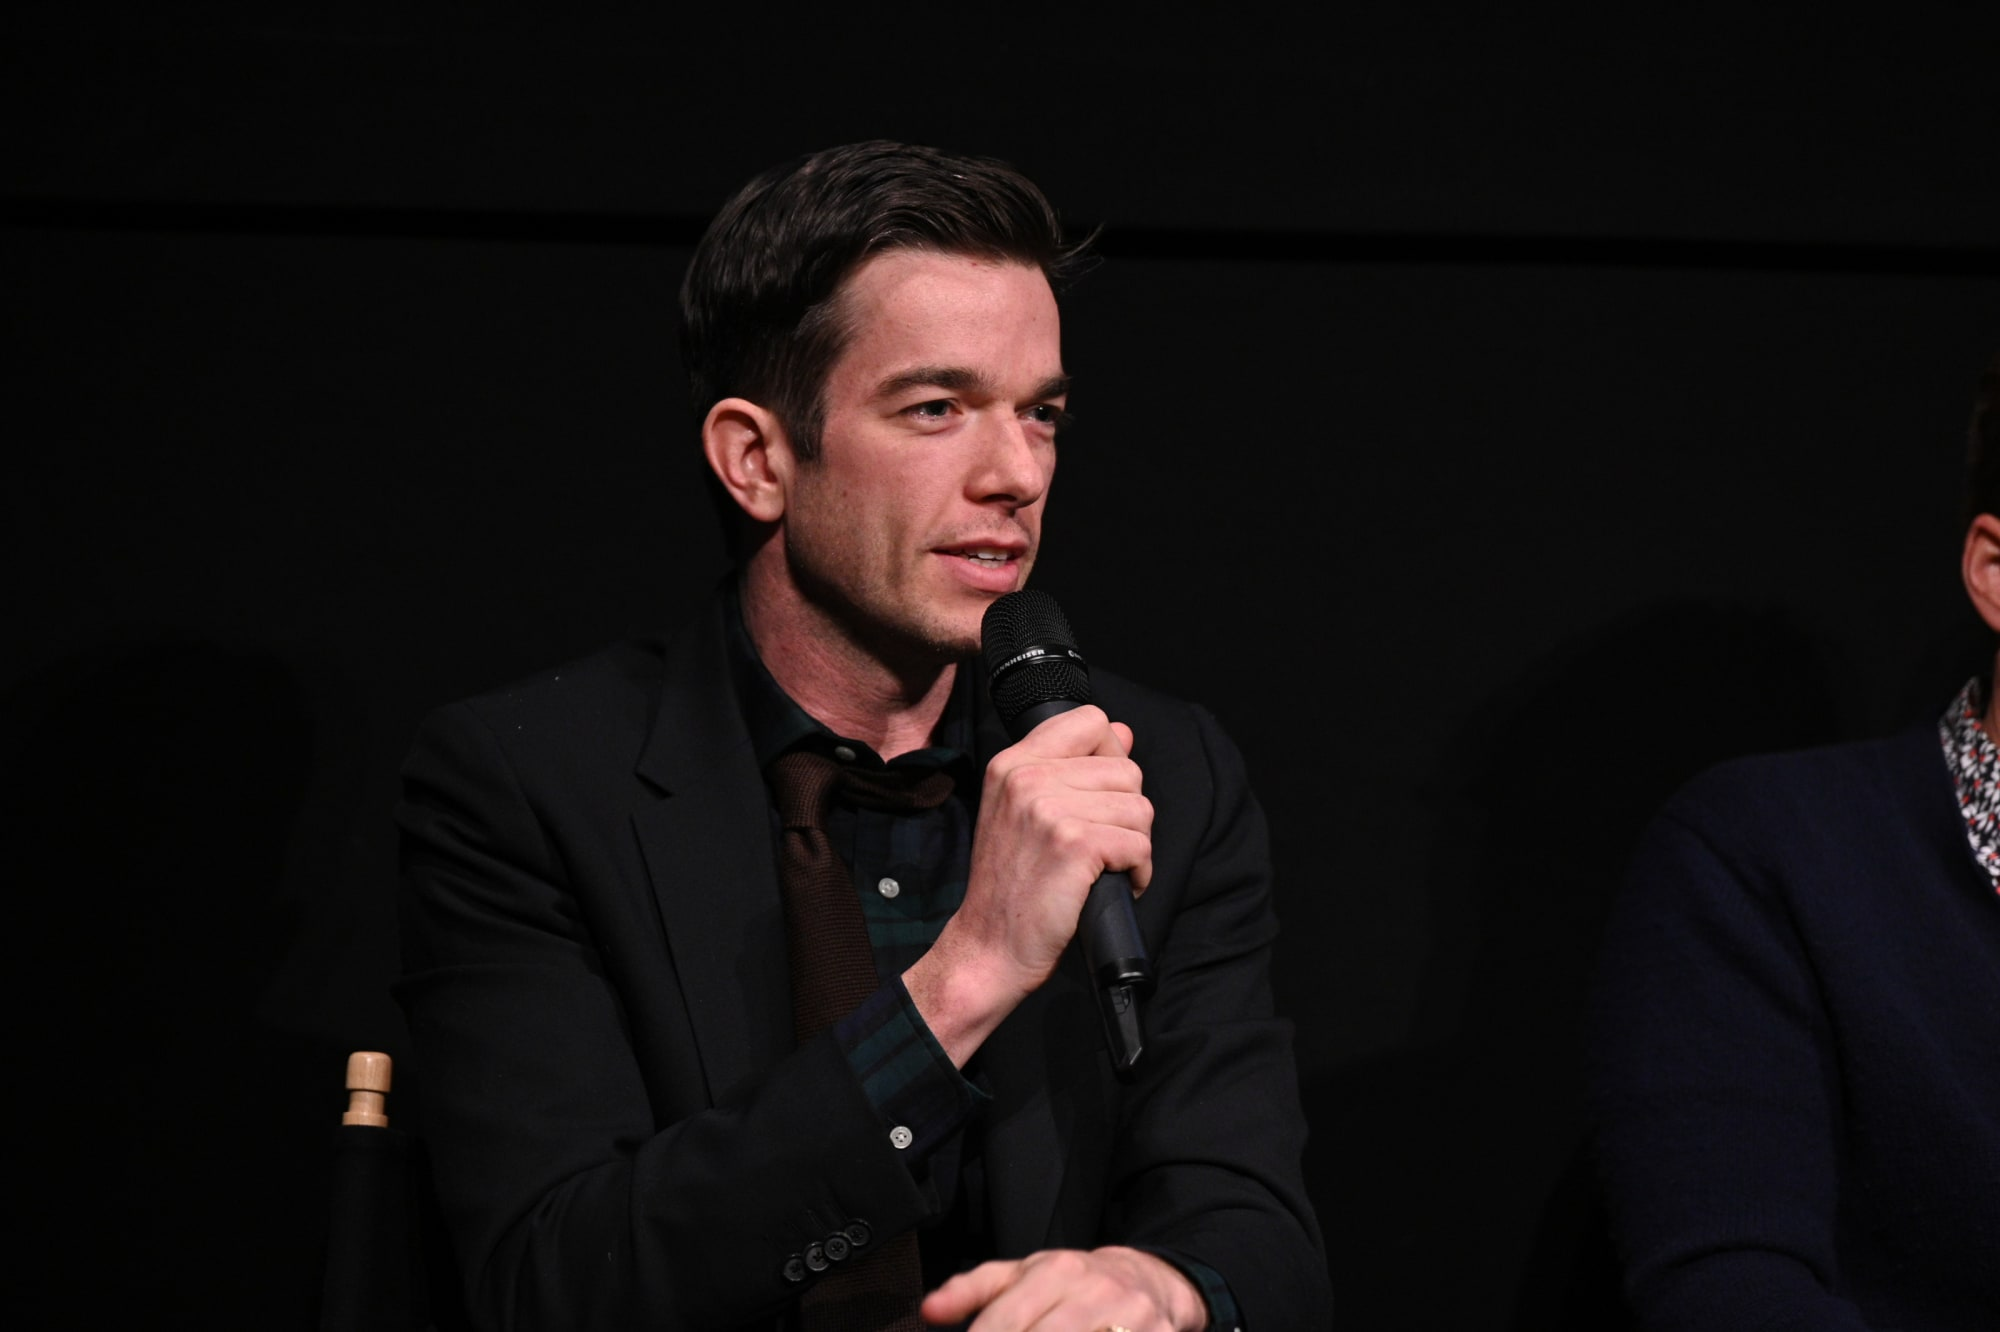 SNL: John Mulaney's fourth time hosting will be the most challenging